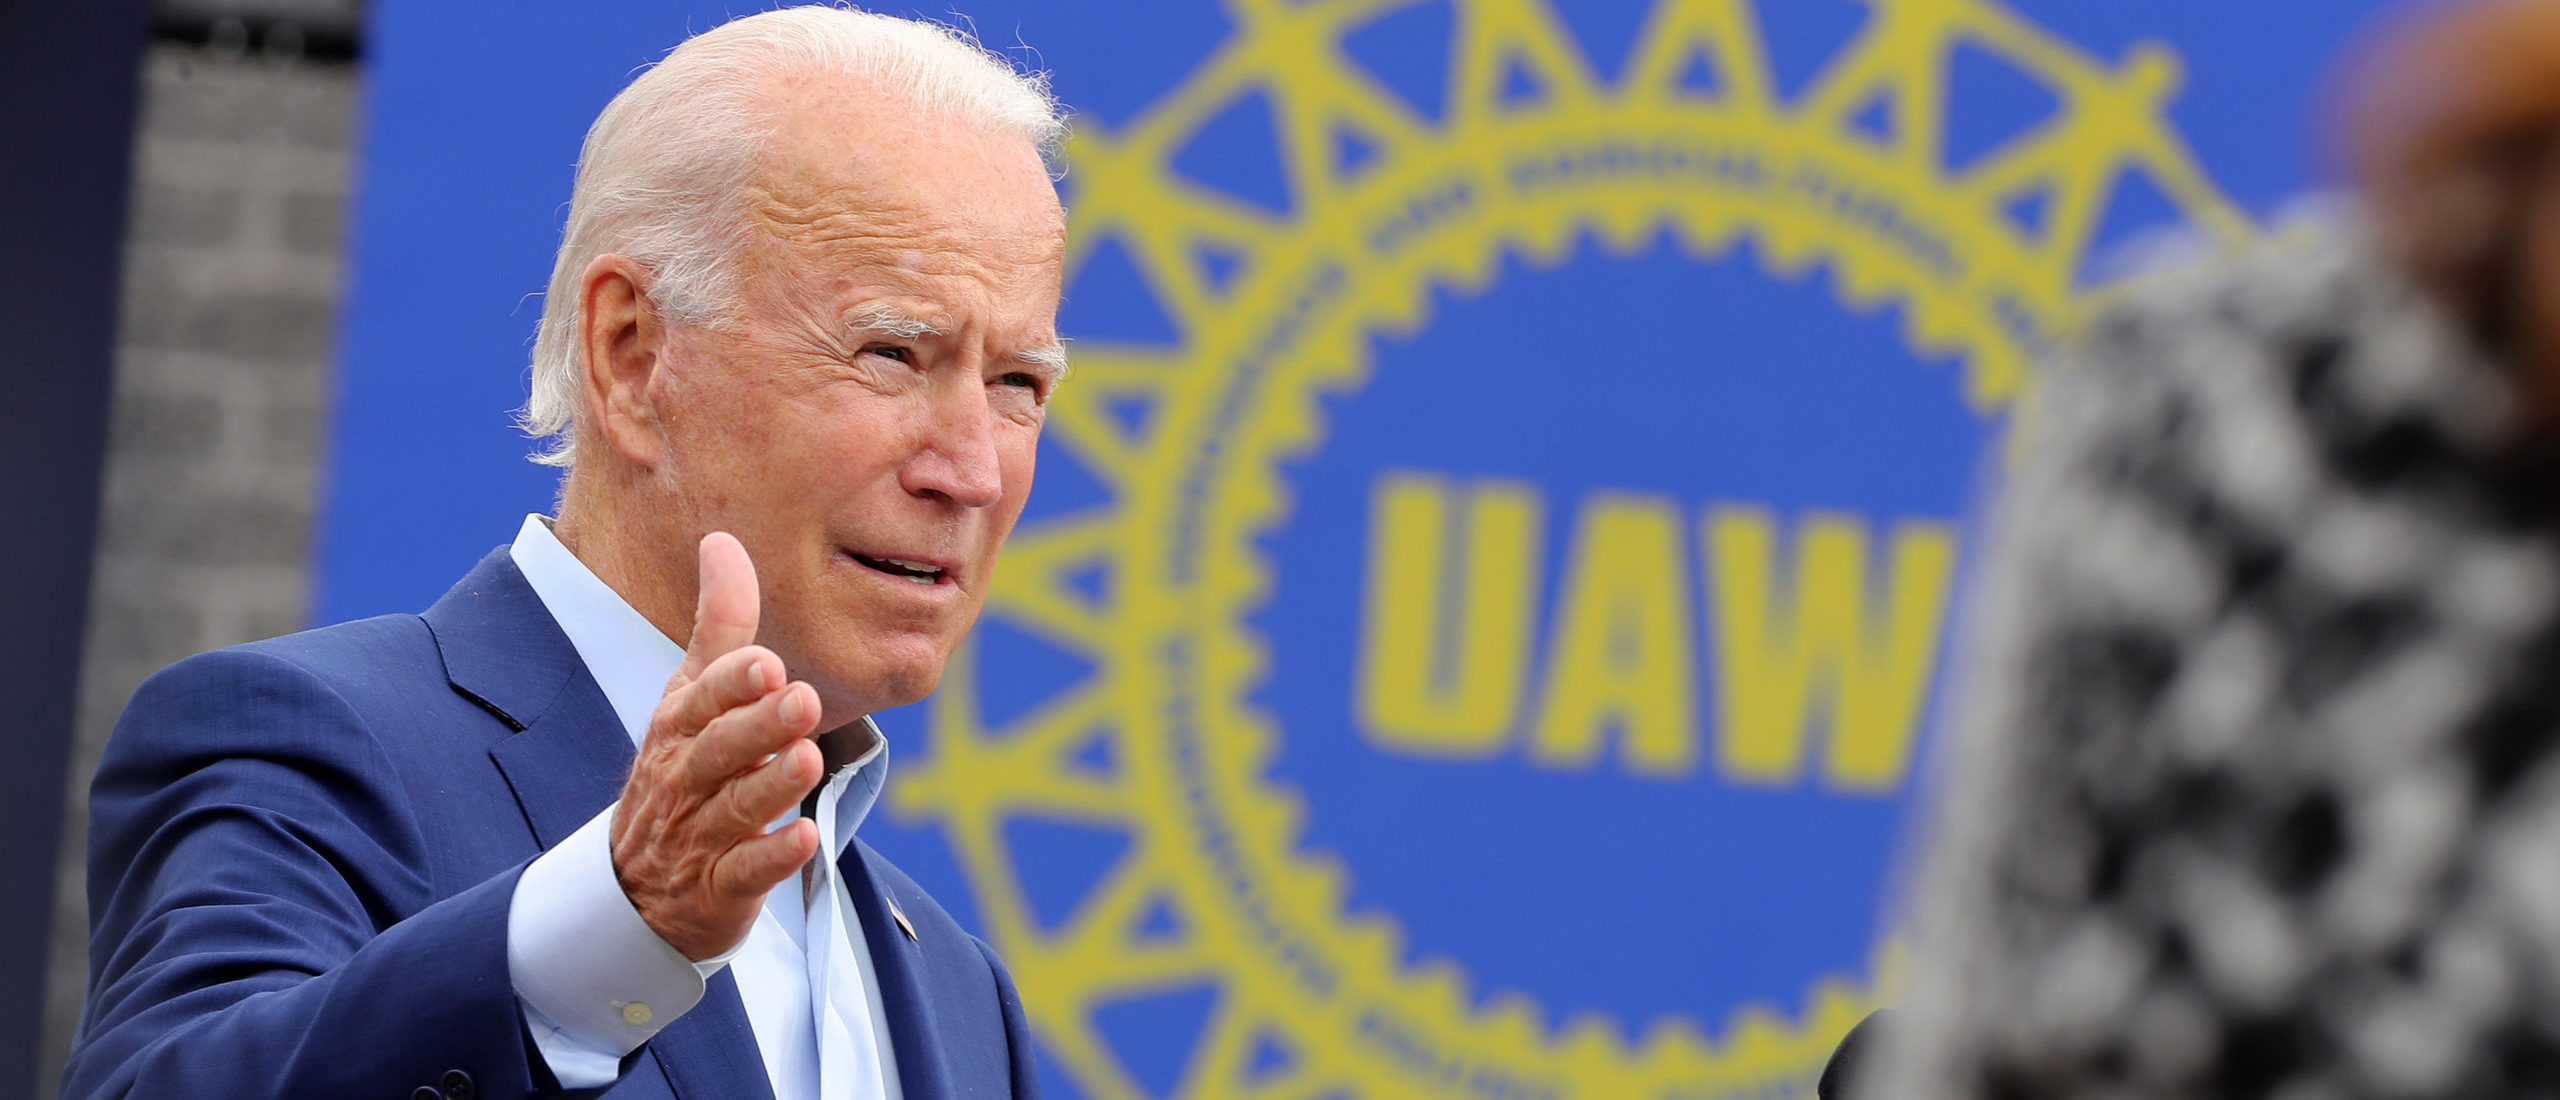 Joe Biden Keeps Touting The Auto Bailout As A Success. Here's The Full Story